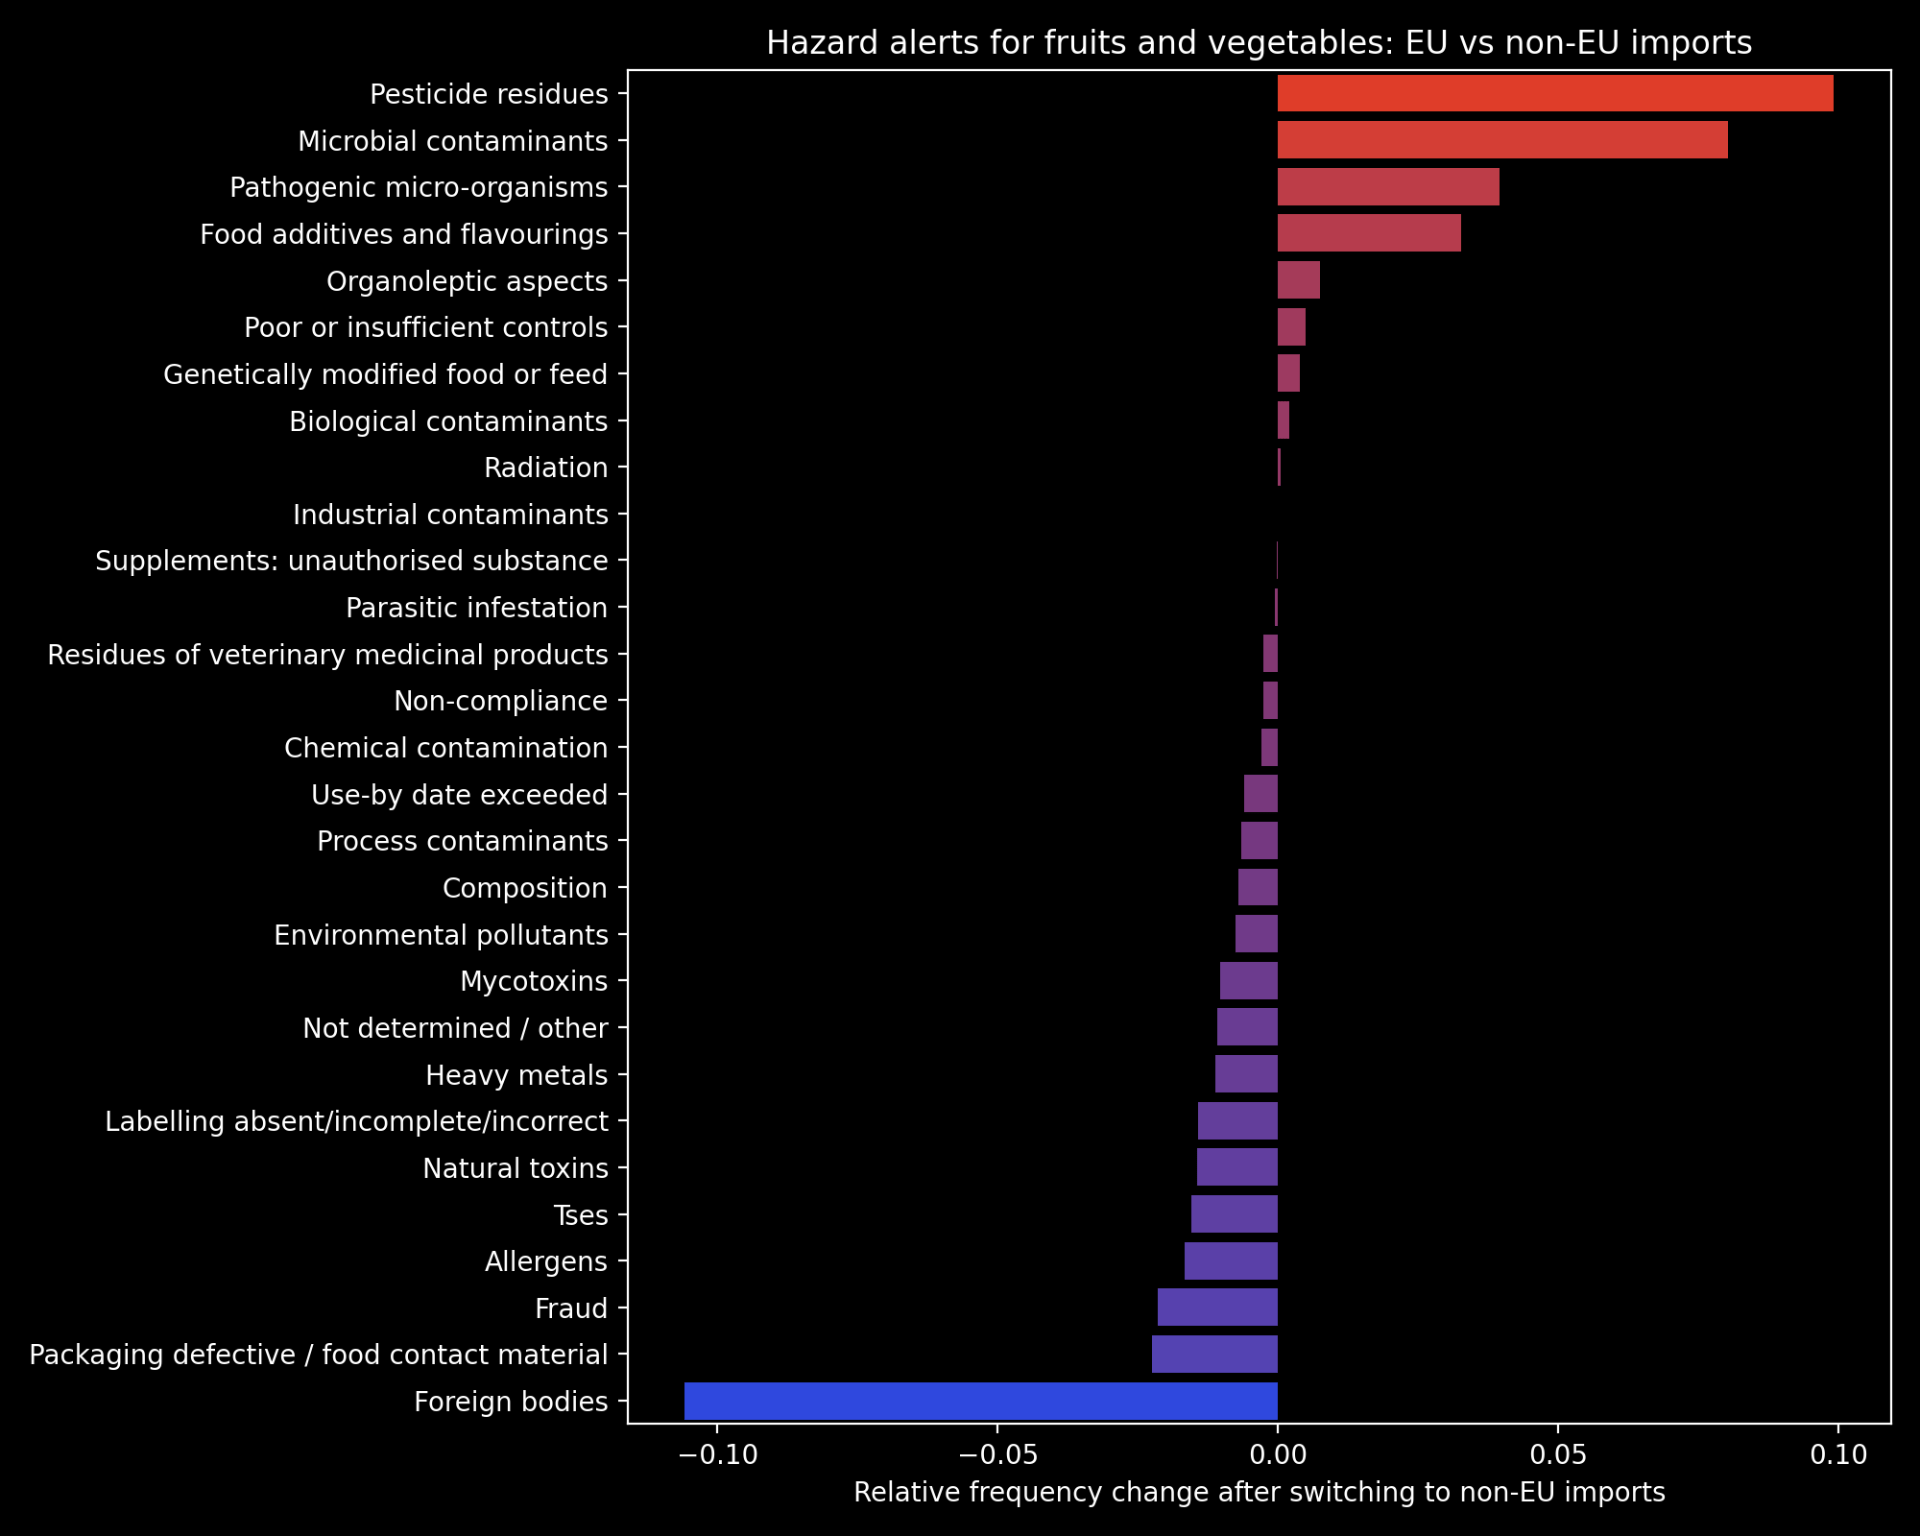 Bar chart showing difference in frequency of various food hazards, such as foreign bodies and allergens, after switching to non EU imports